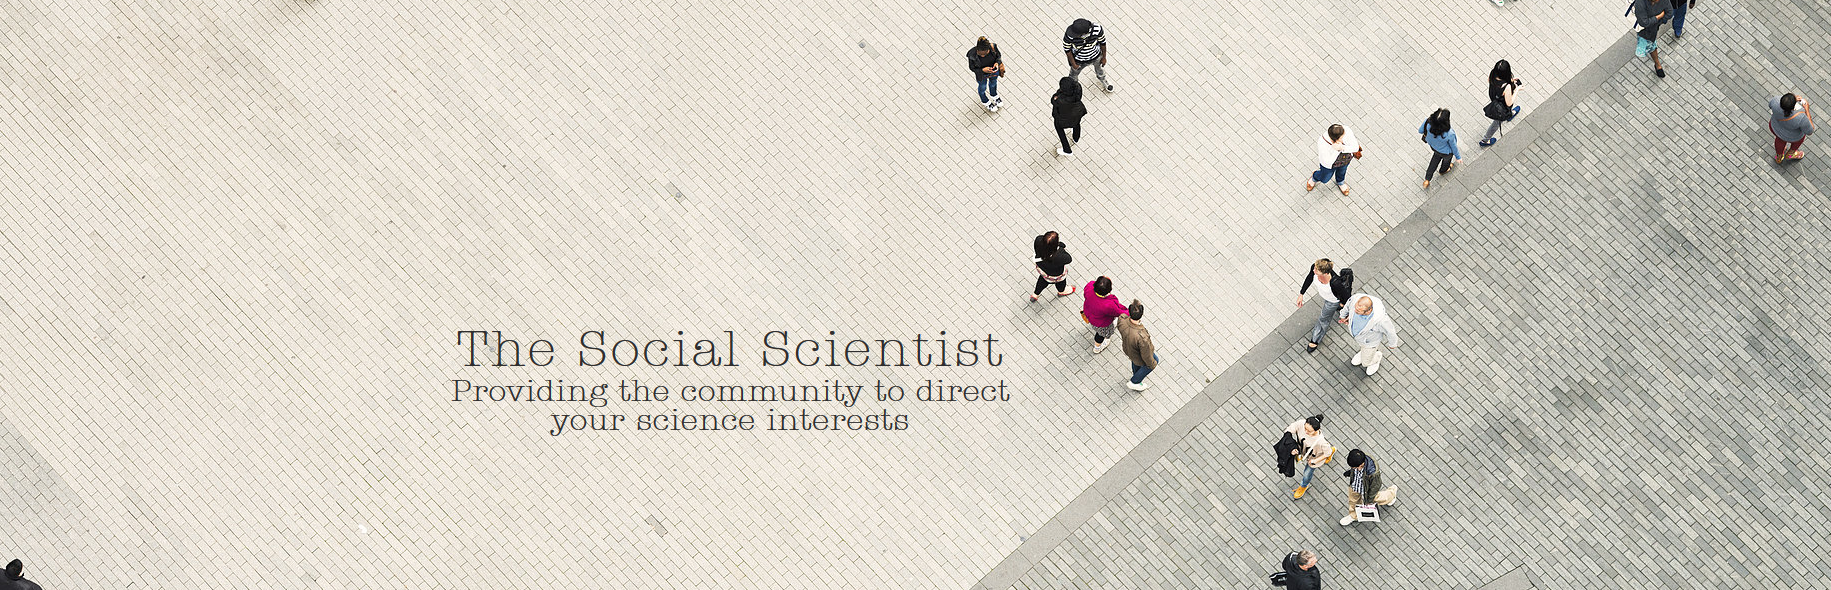 The Social Scientist